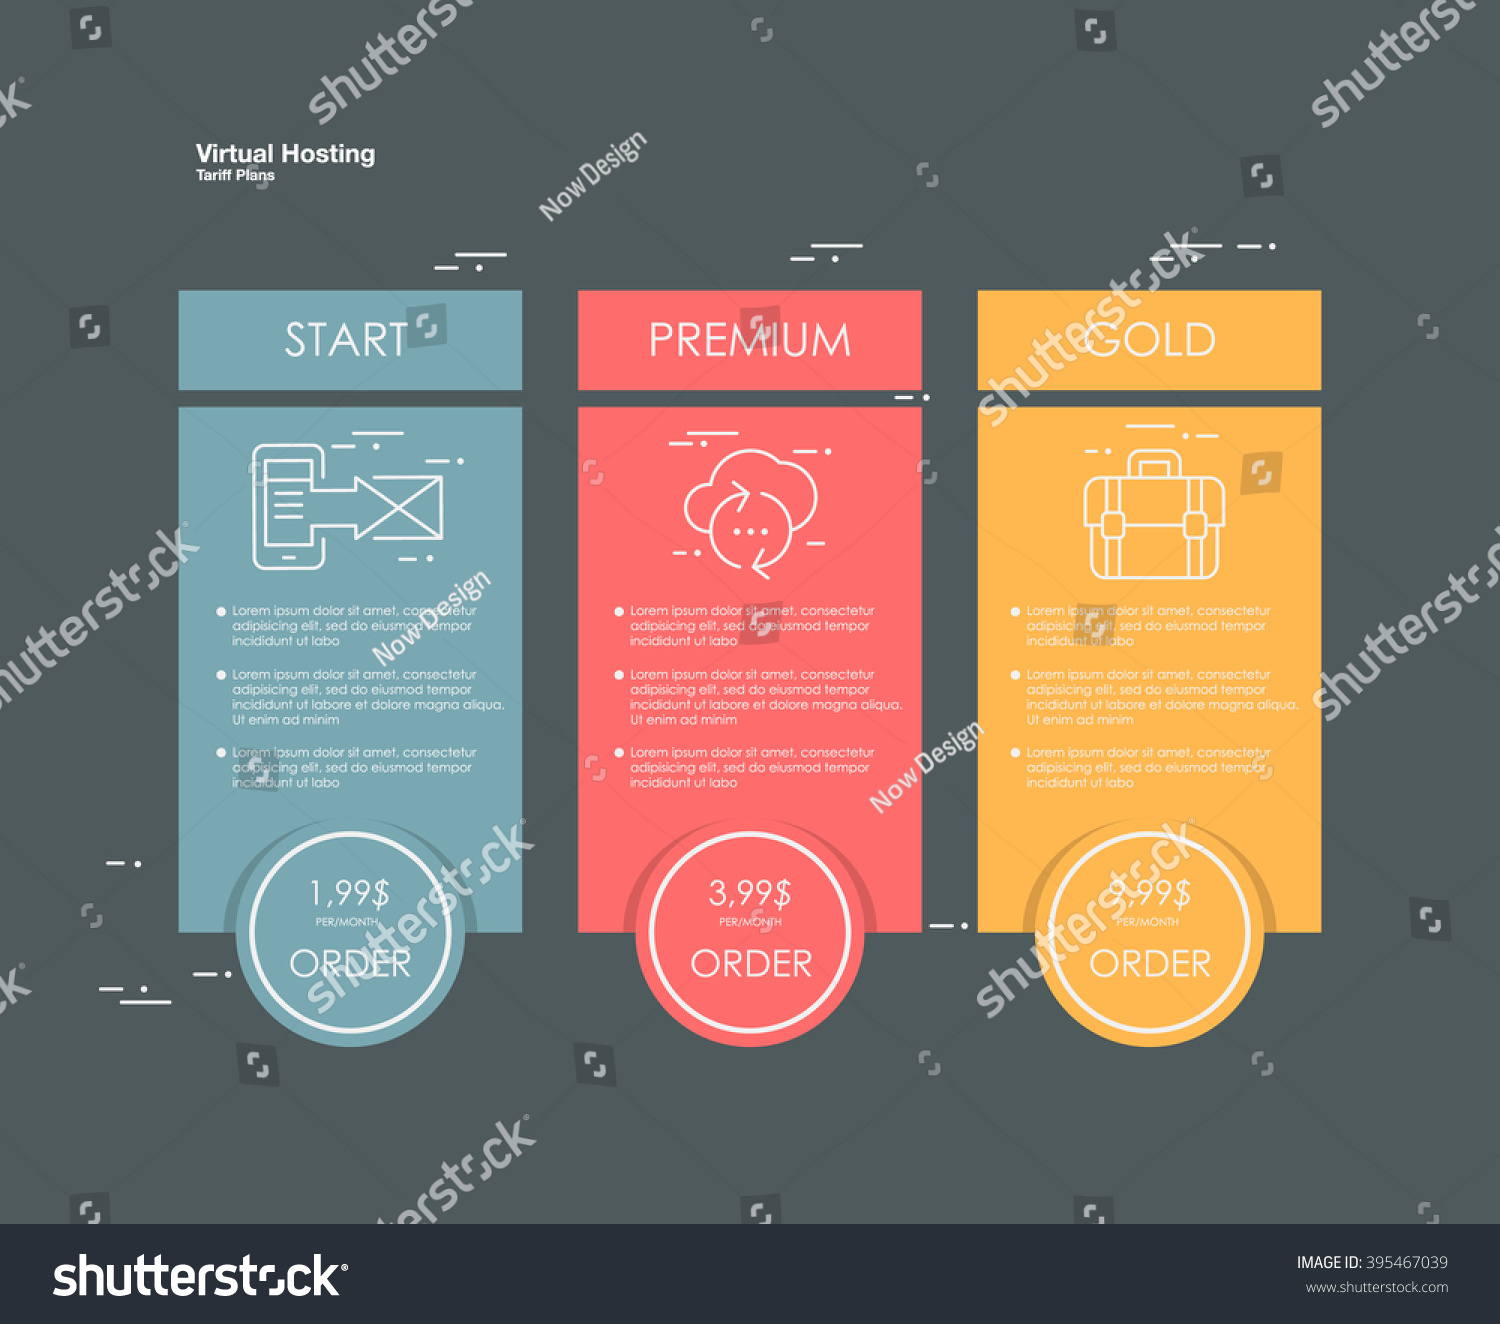 Price List Hosting Plans Web Boxes Stock Vector 395467039 ...